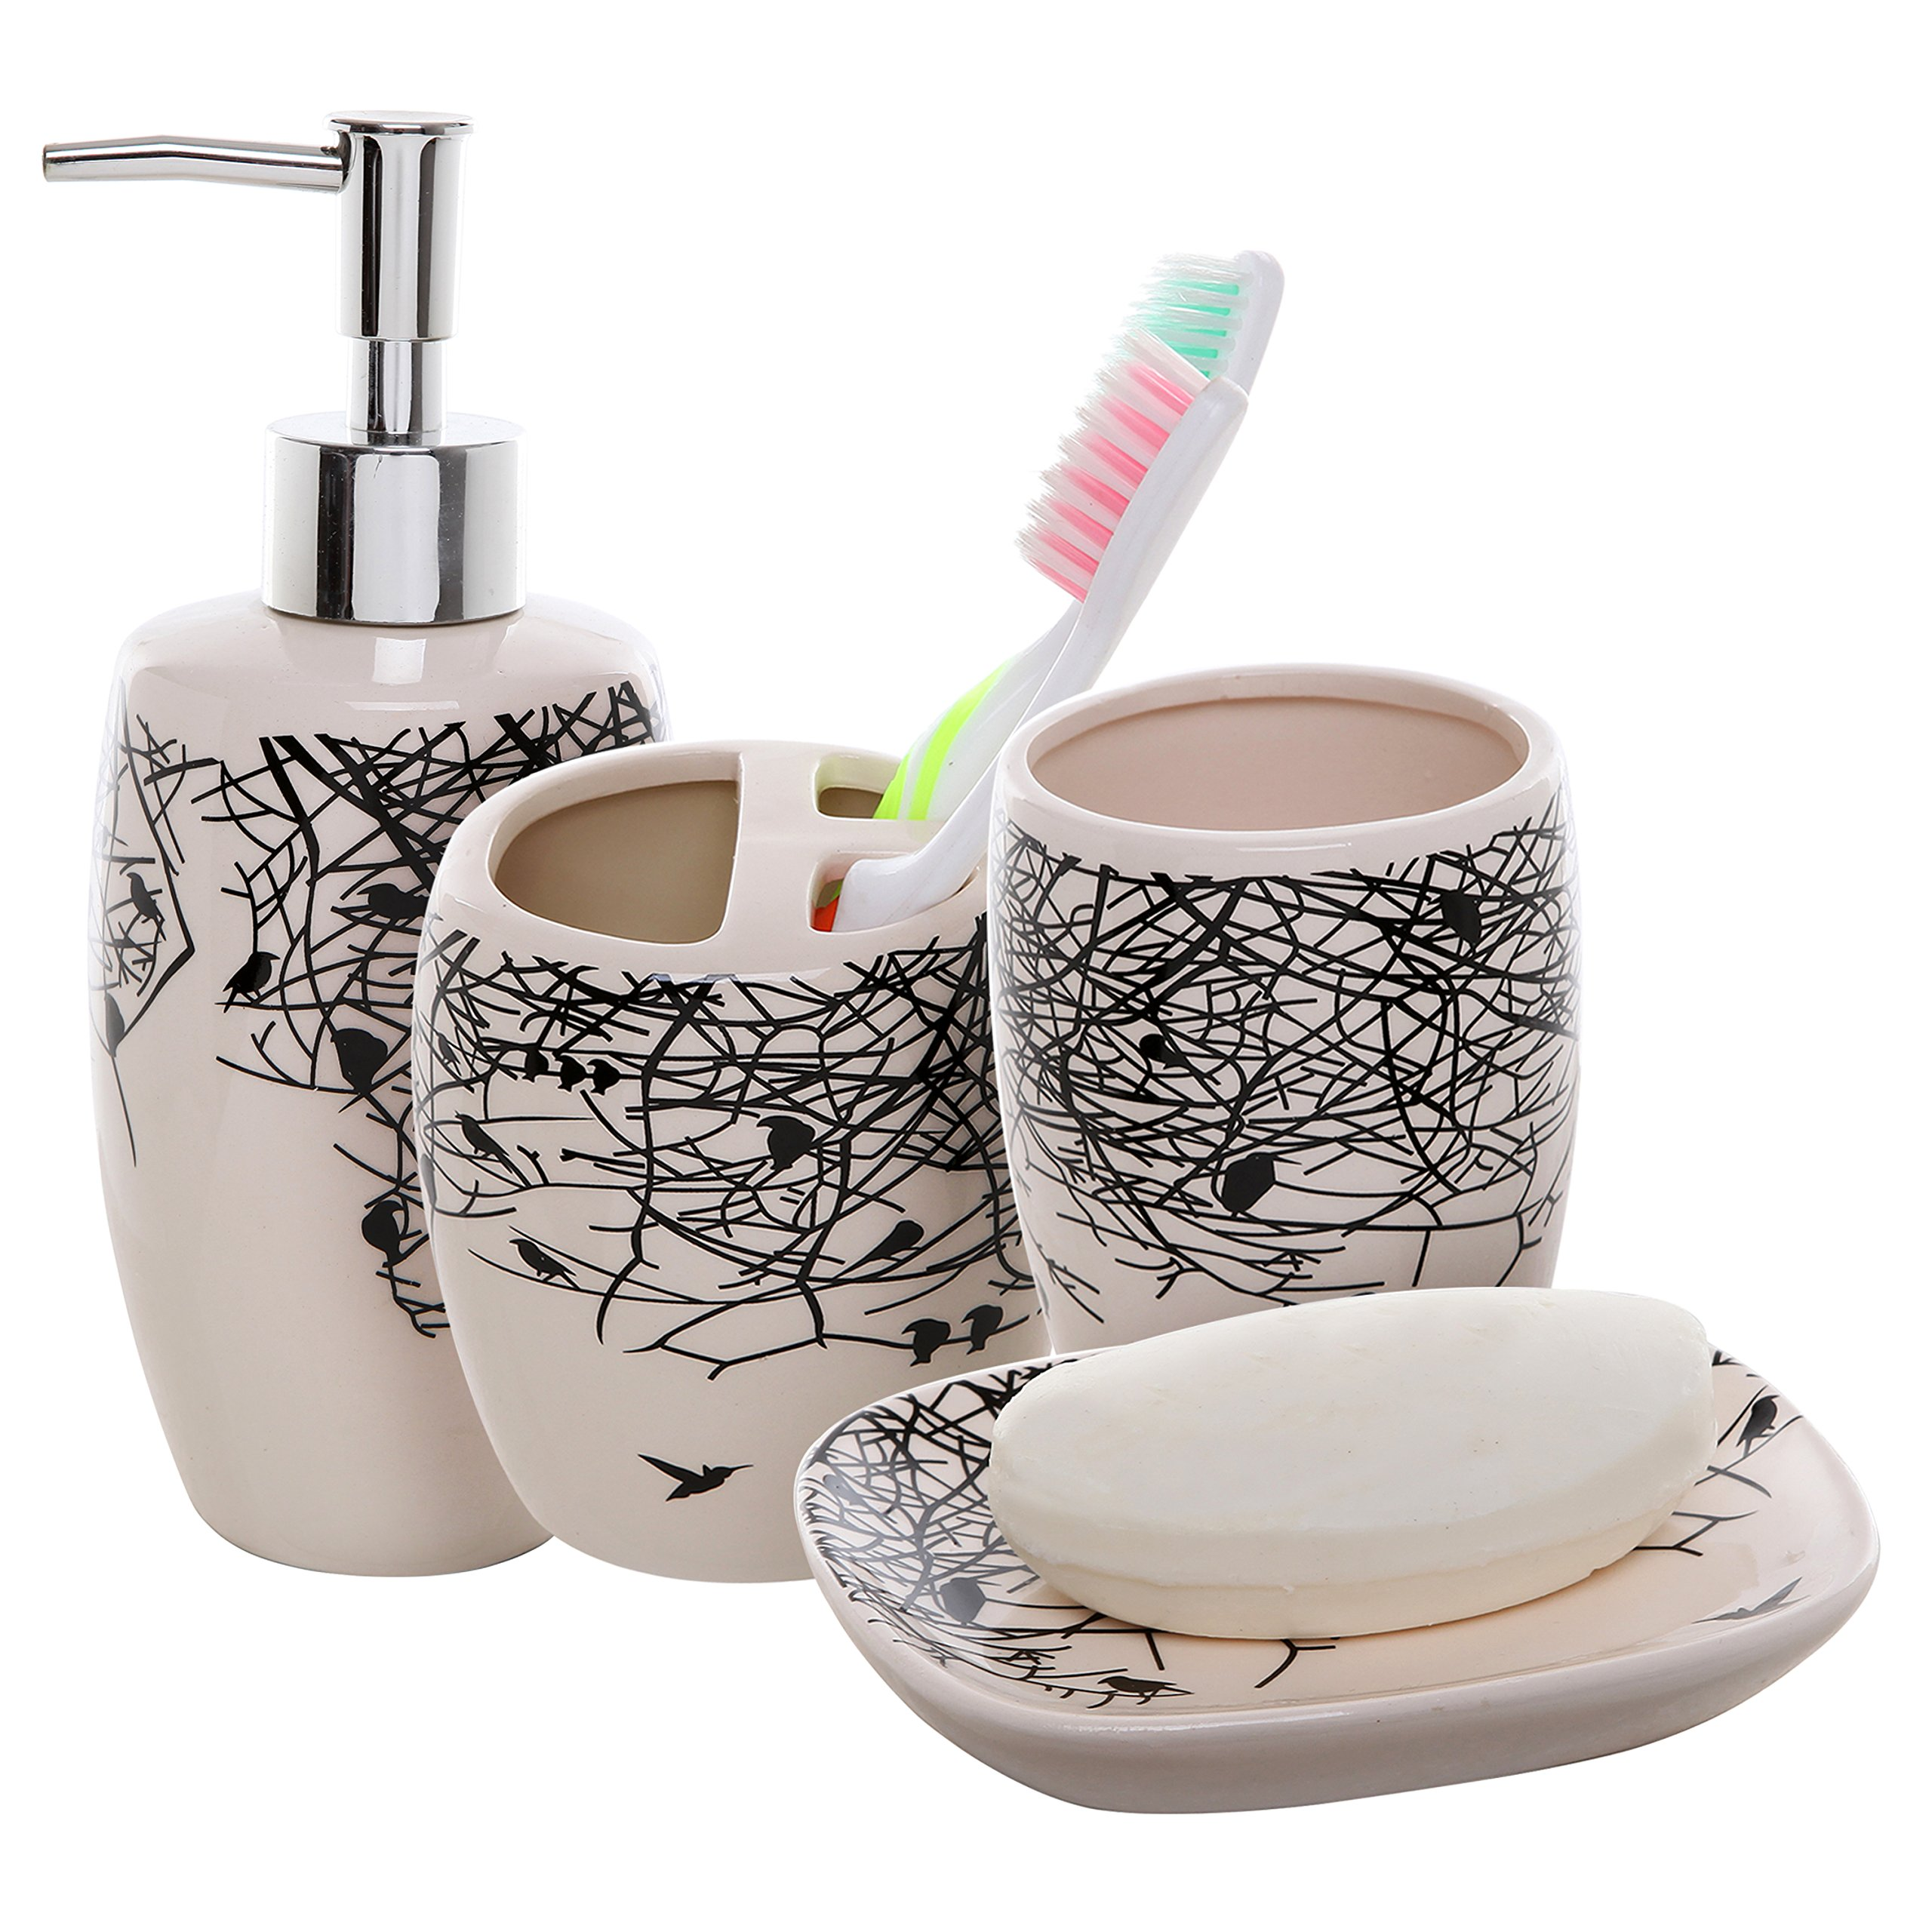 4 piece beige ceramic bathroom accessories set for Bathroom accessories set